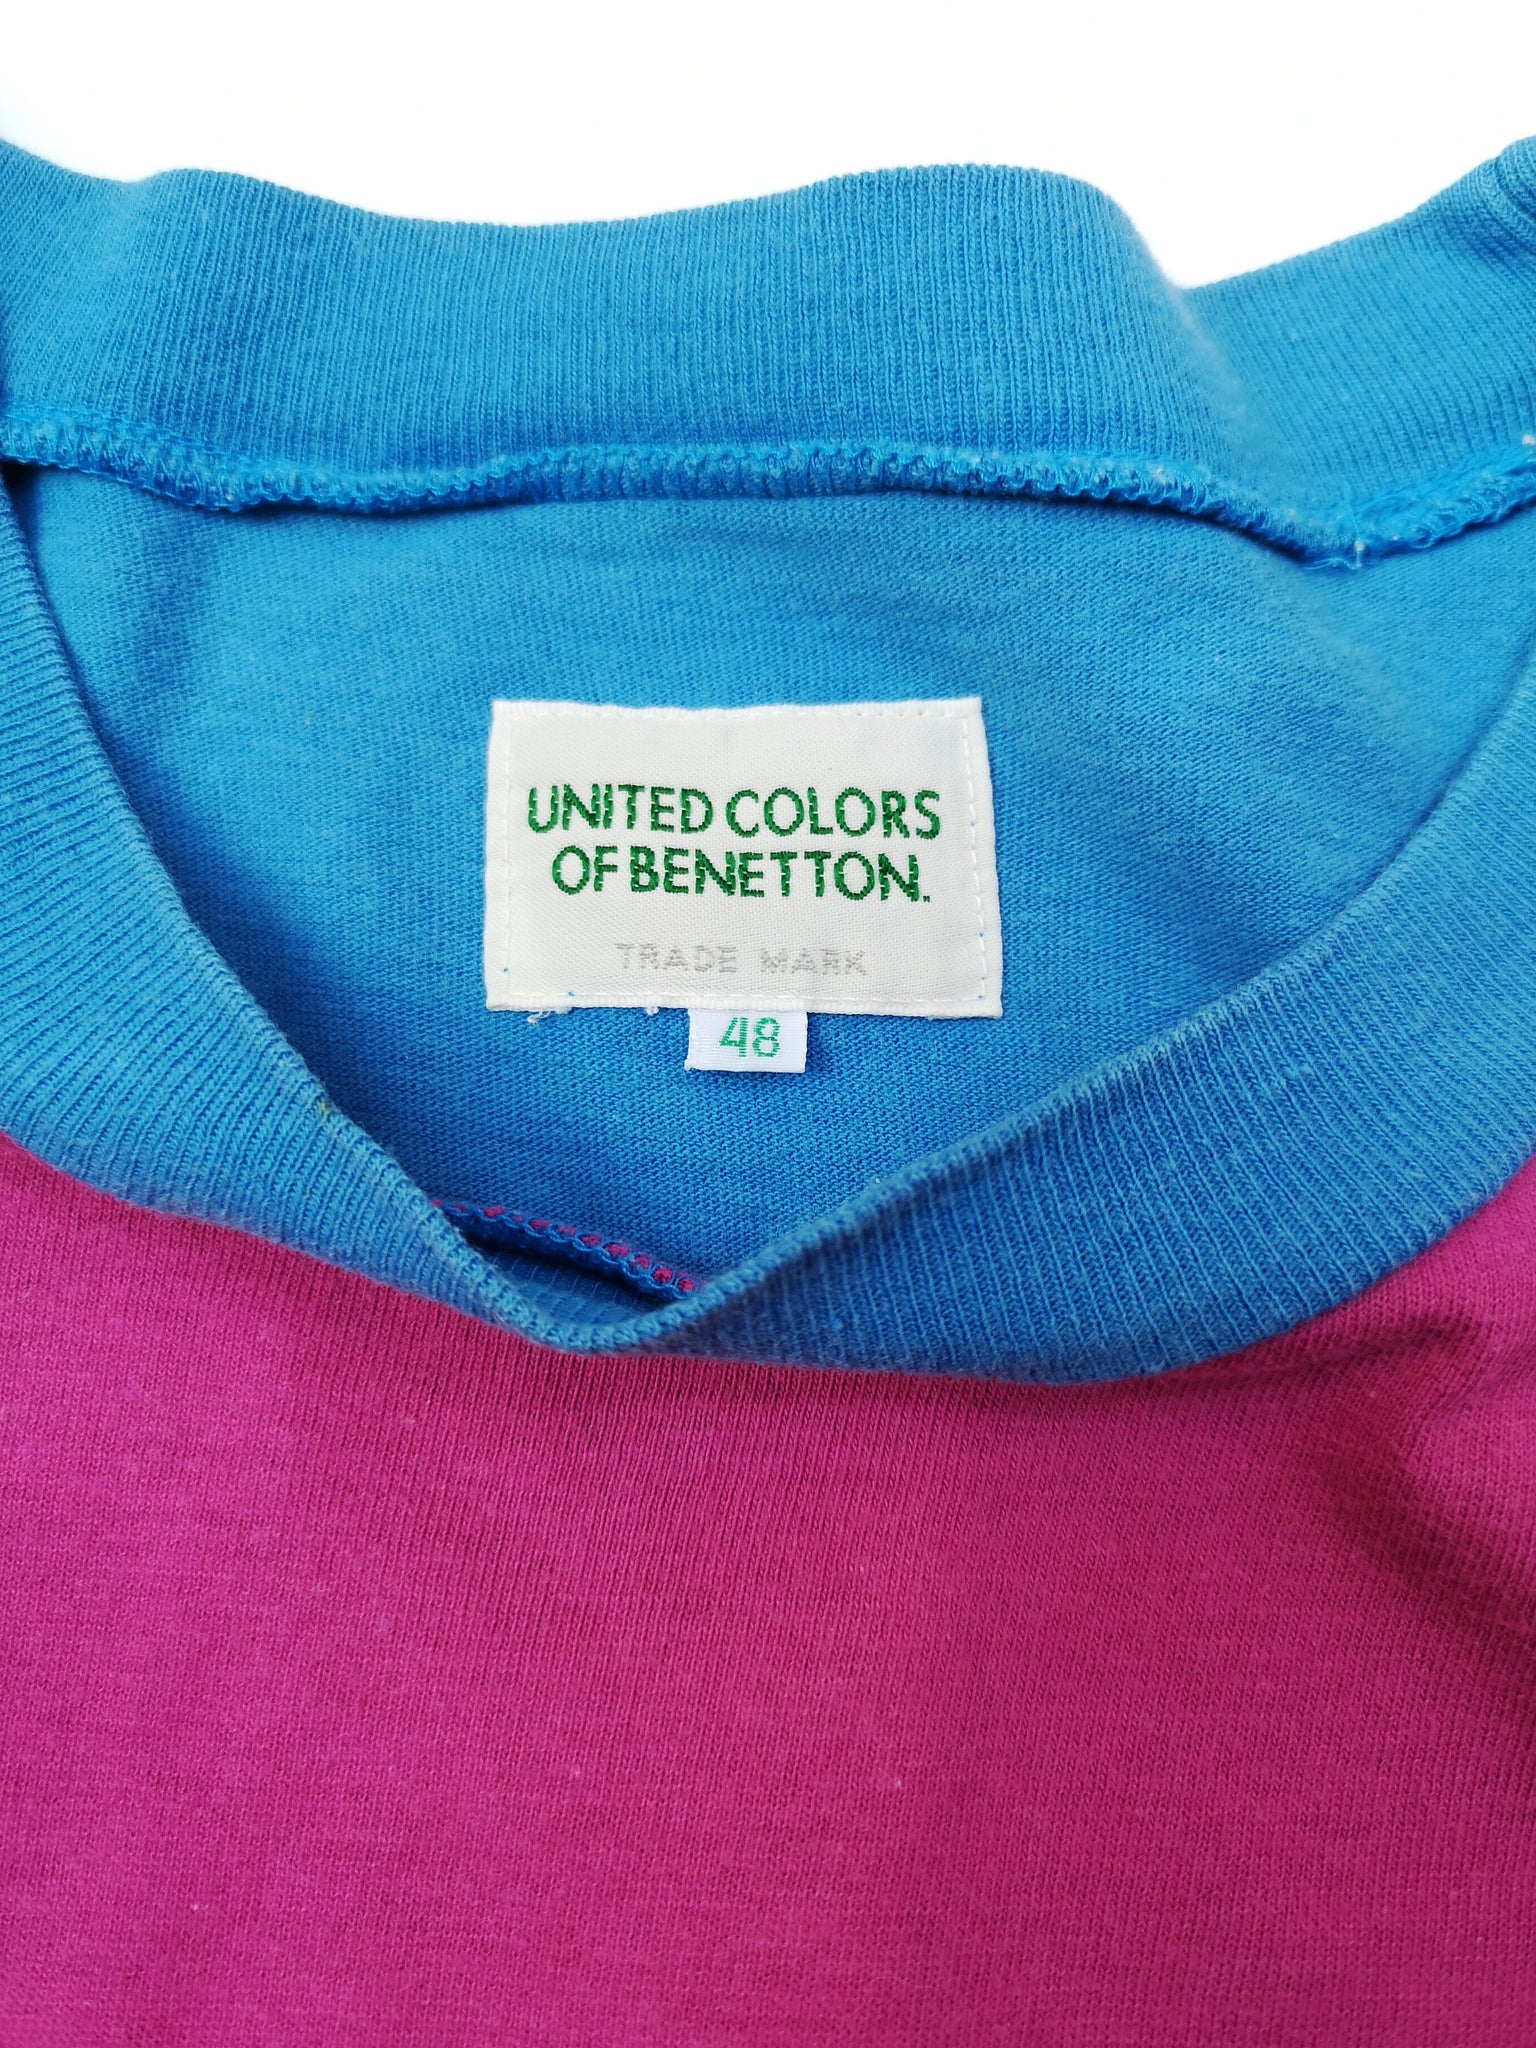 UNITED COLORS OF BENETTON COLOR BLOCK T-SHIRT